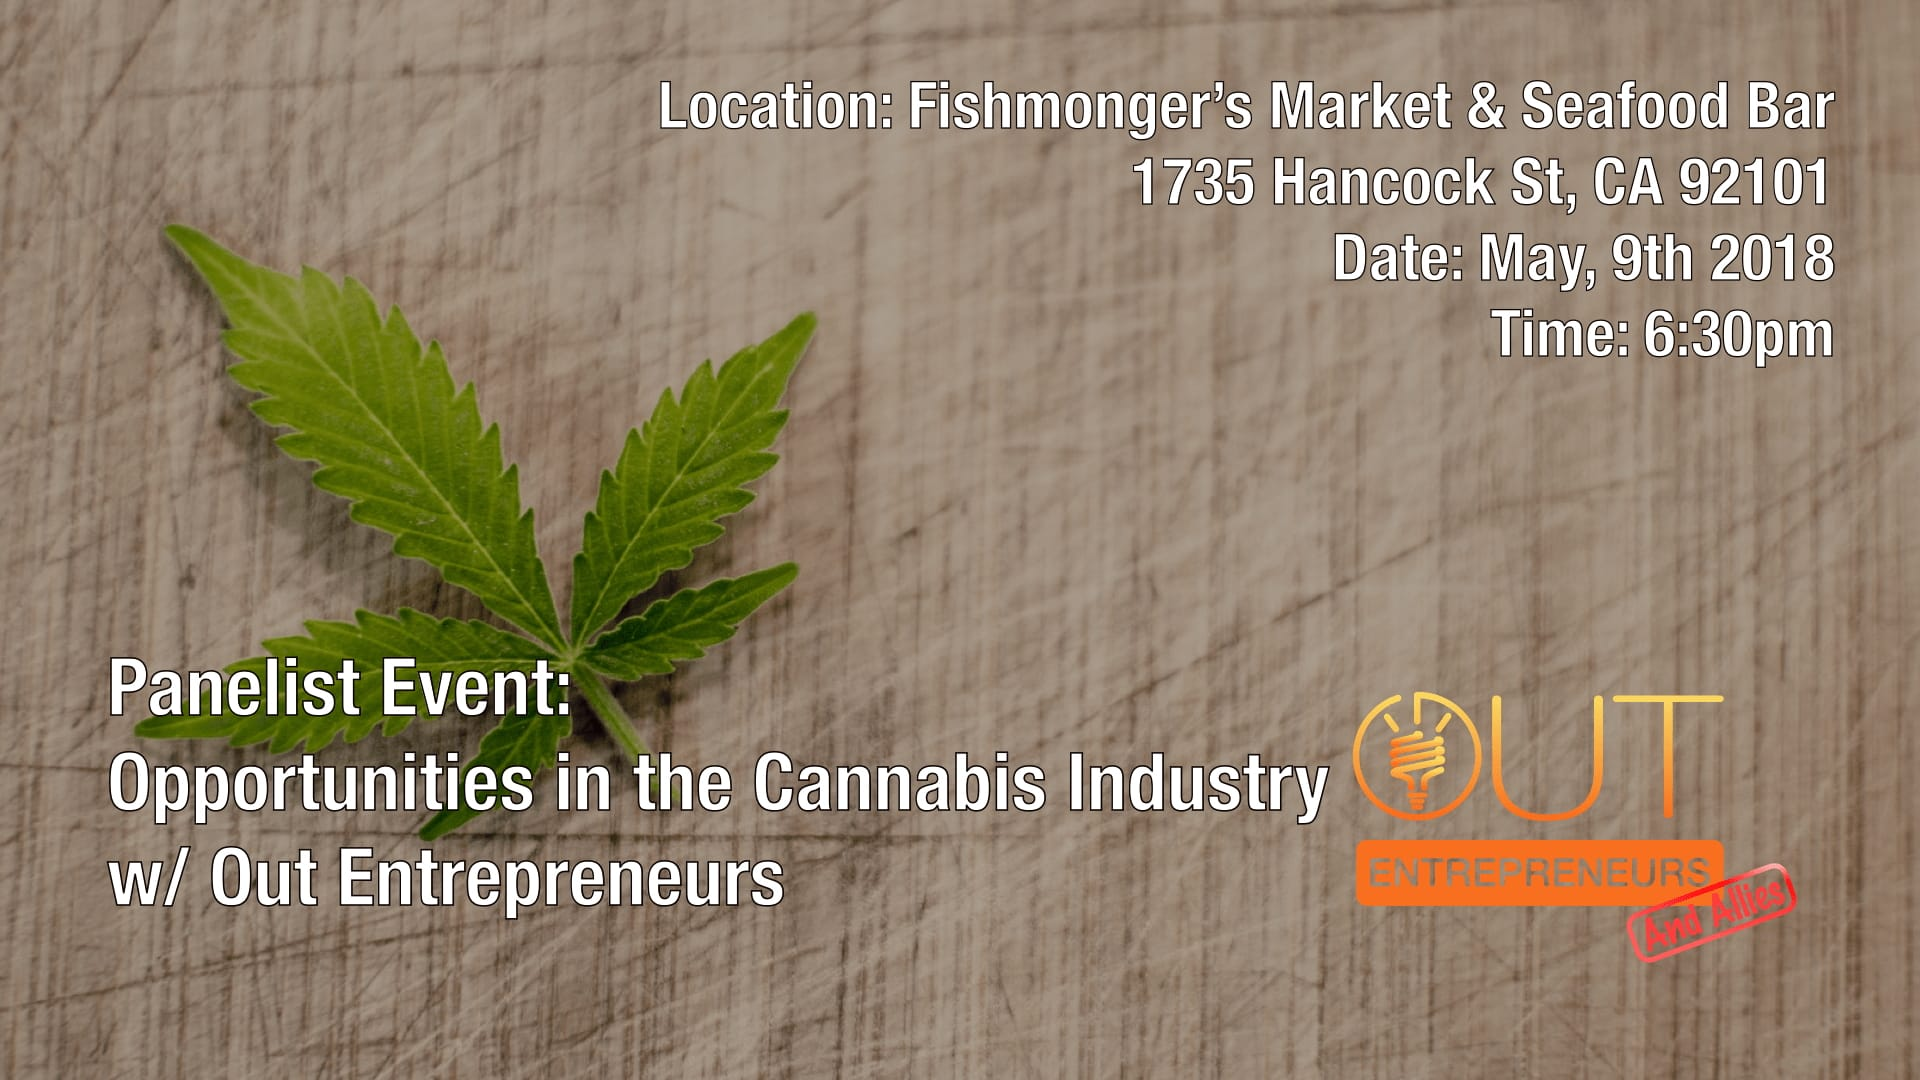 Panelist Event: Opportunities in the Cannabis Industry with Out Entrepreneurs